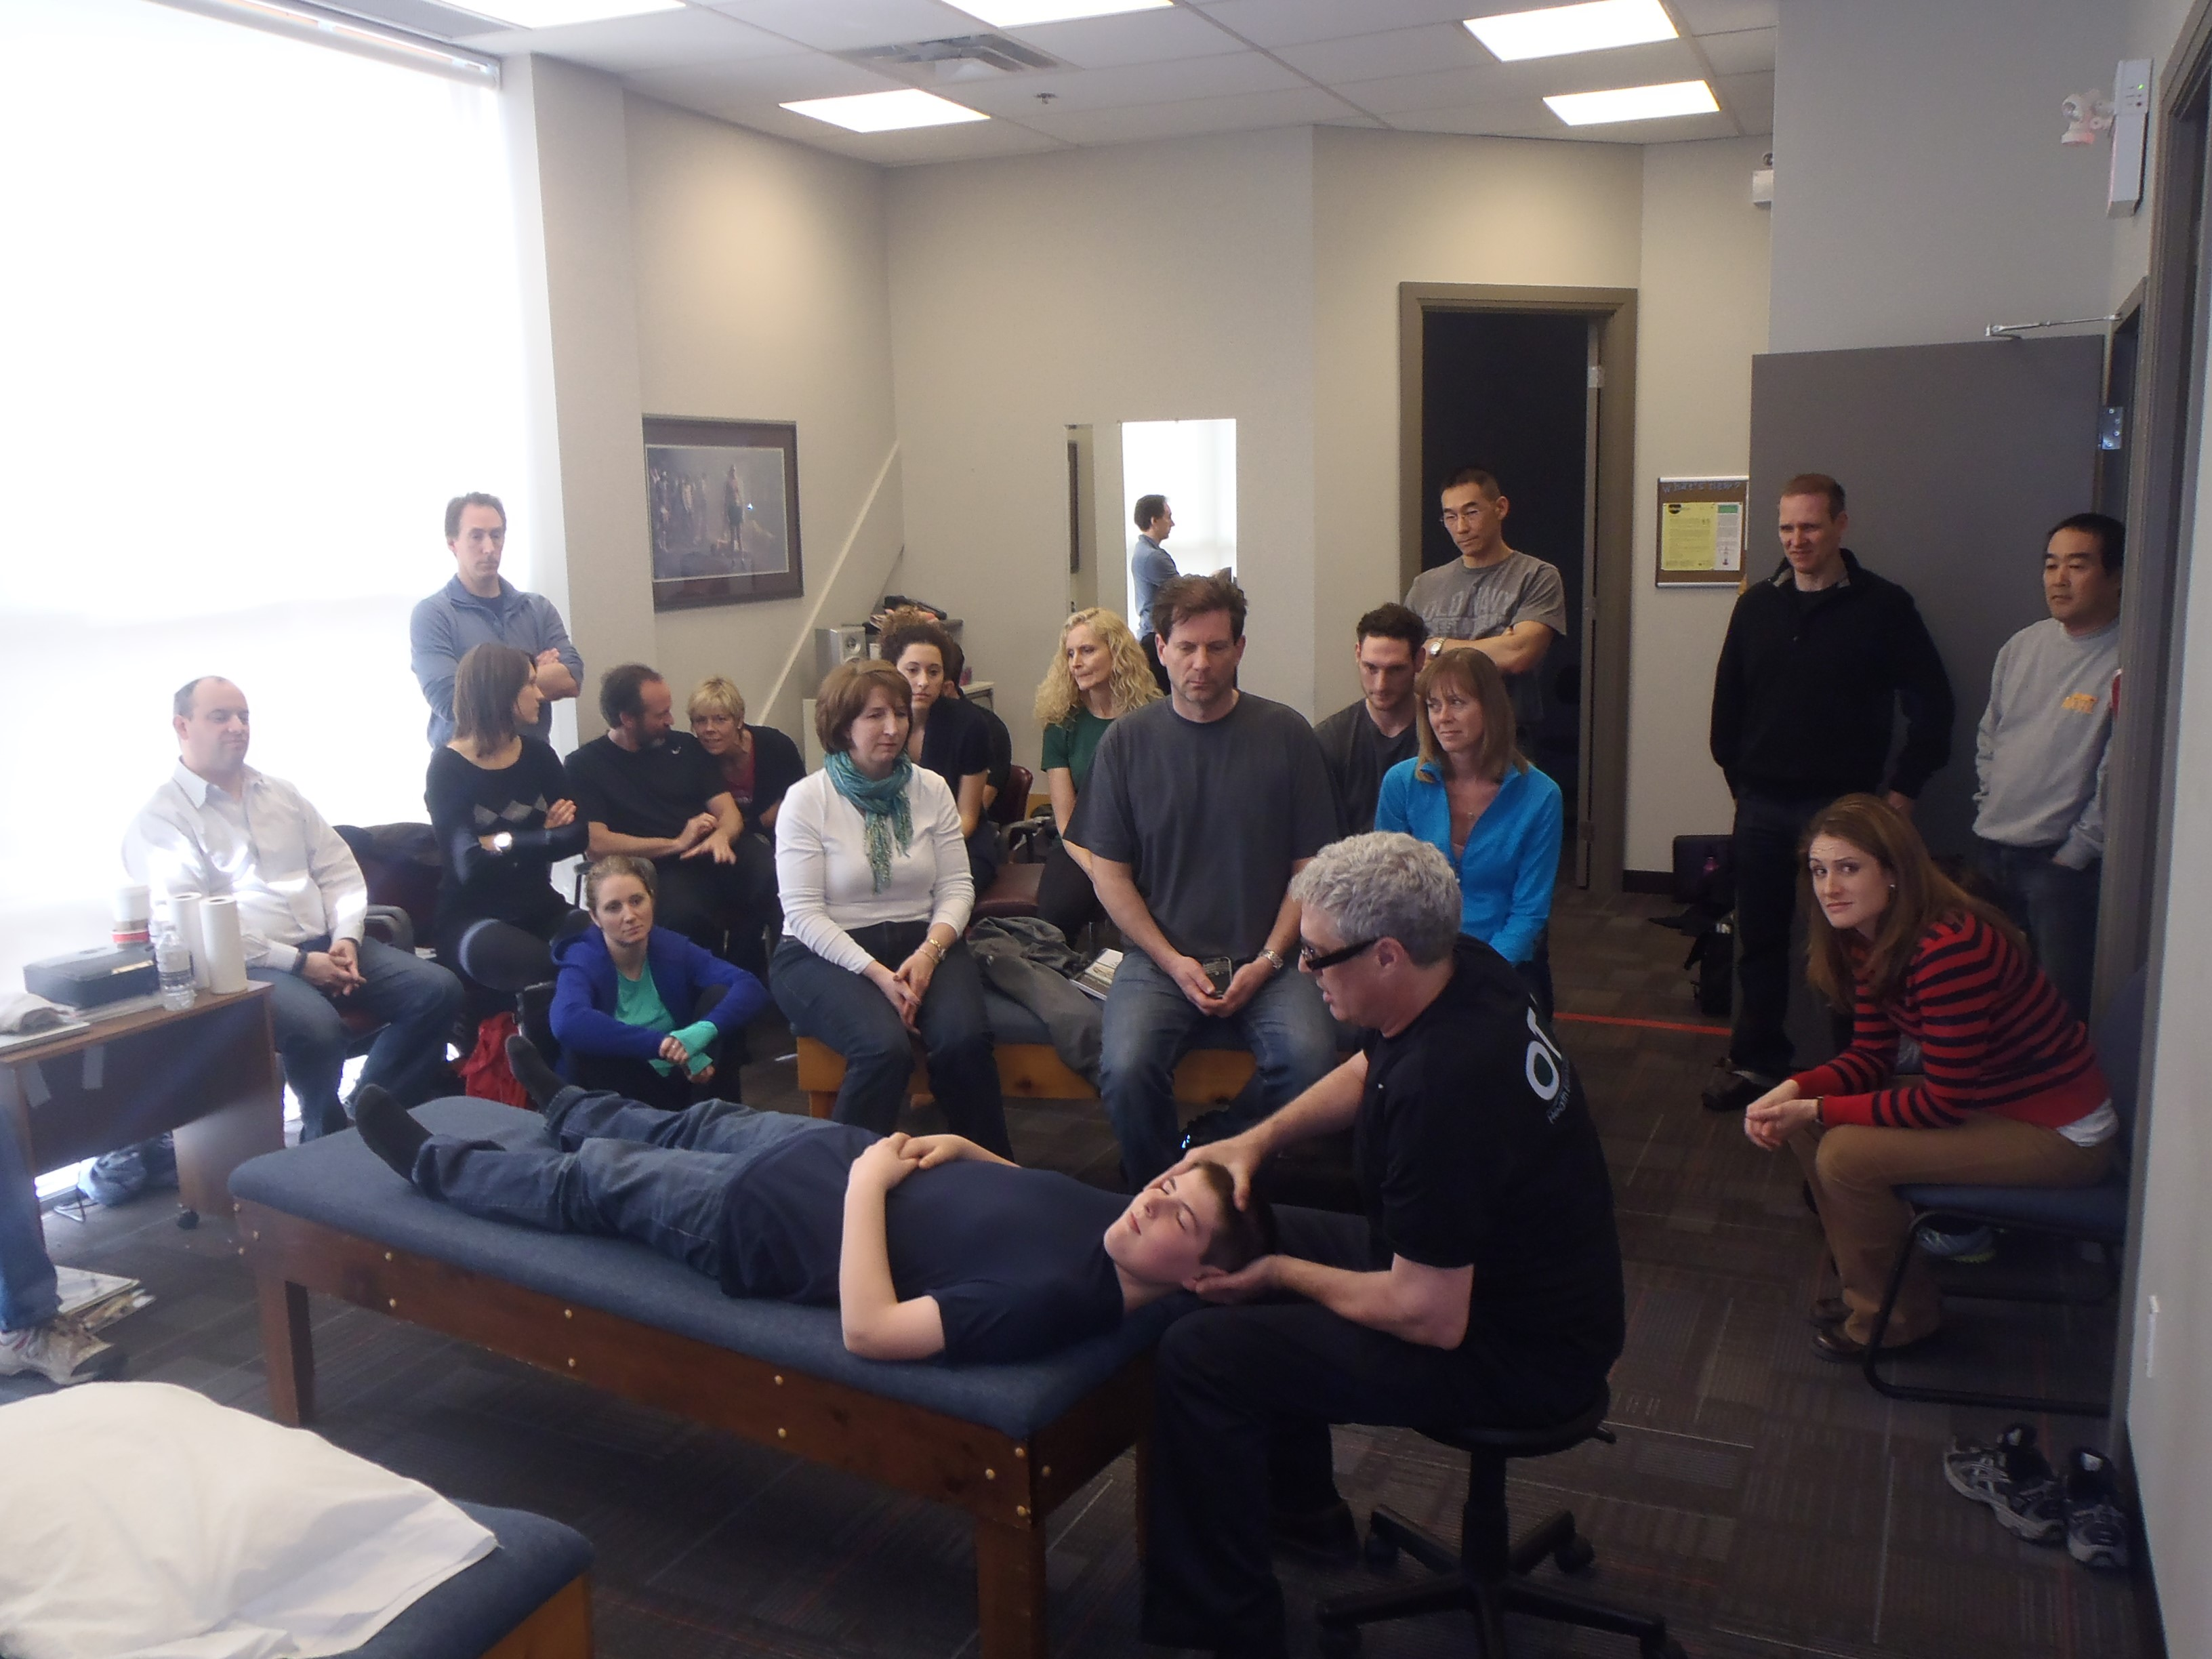 Dr. Murphy performs an adjustment before the crowd at the OTZ Seminar in Toronto.